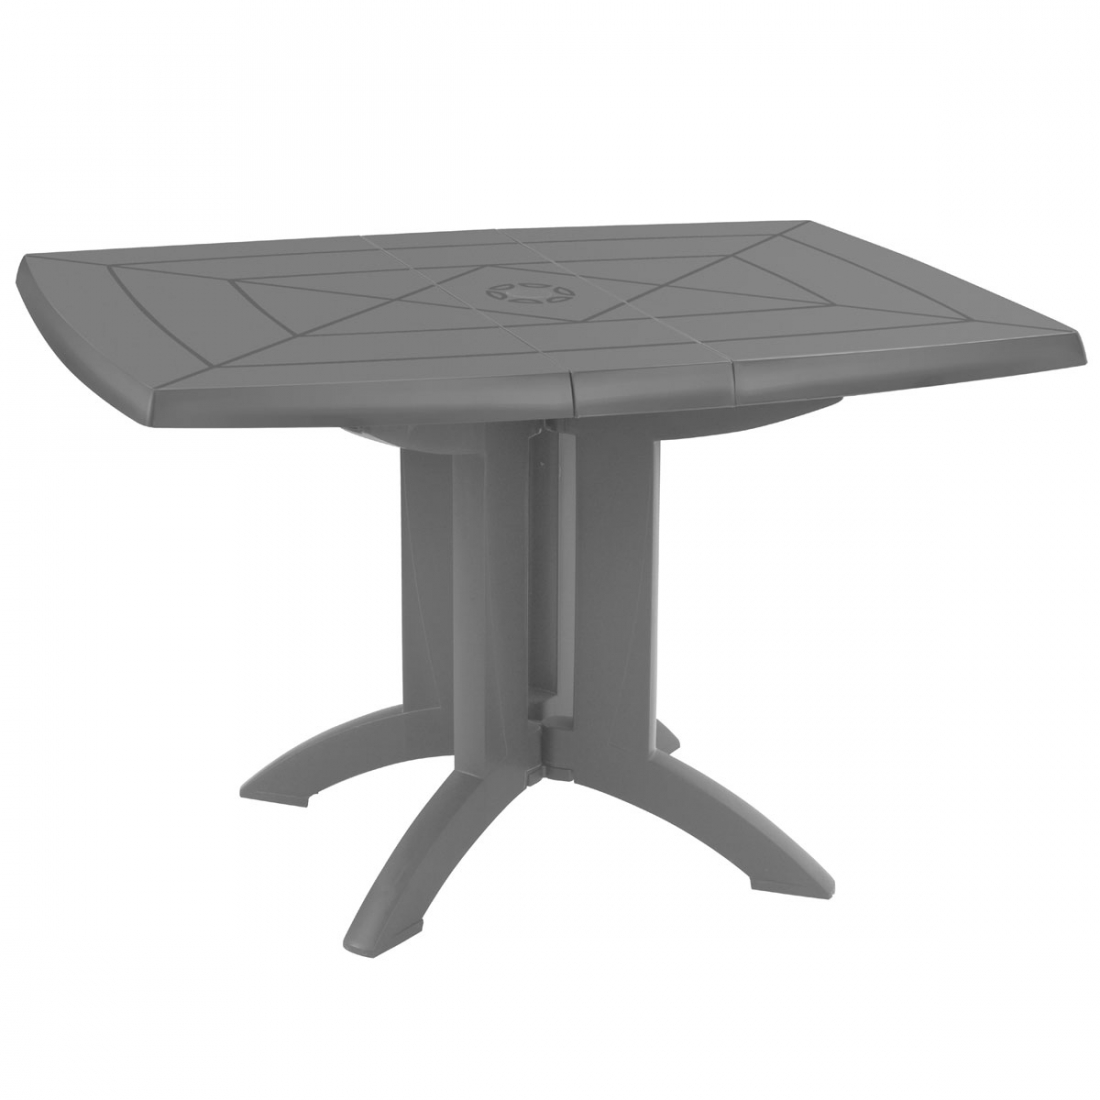 Table de jardin pliante vega grosfillex for Table pliante but